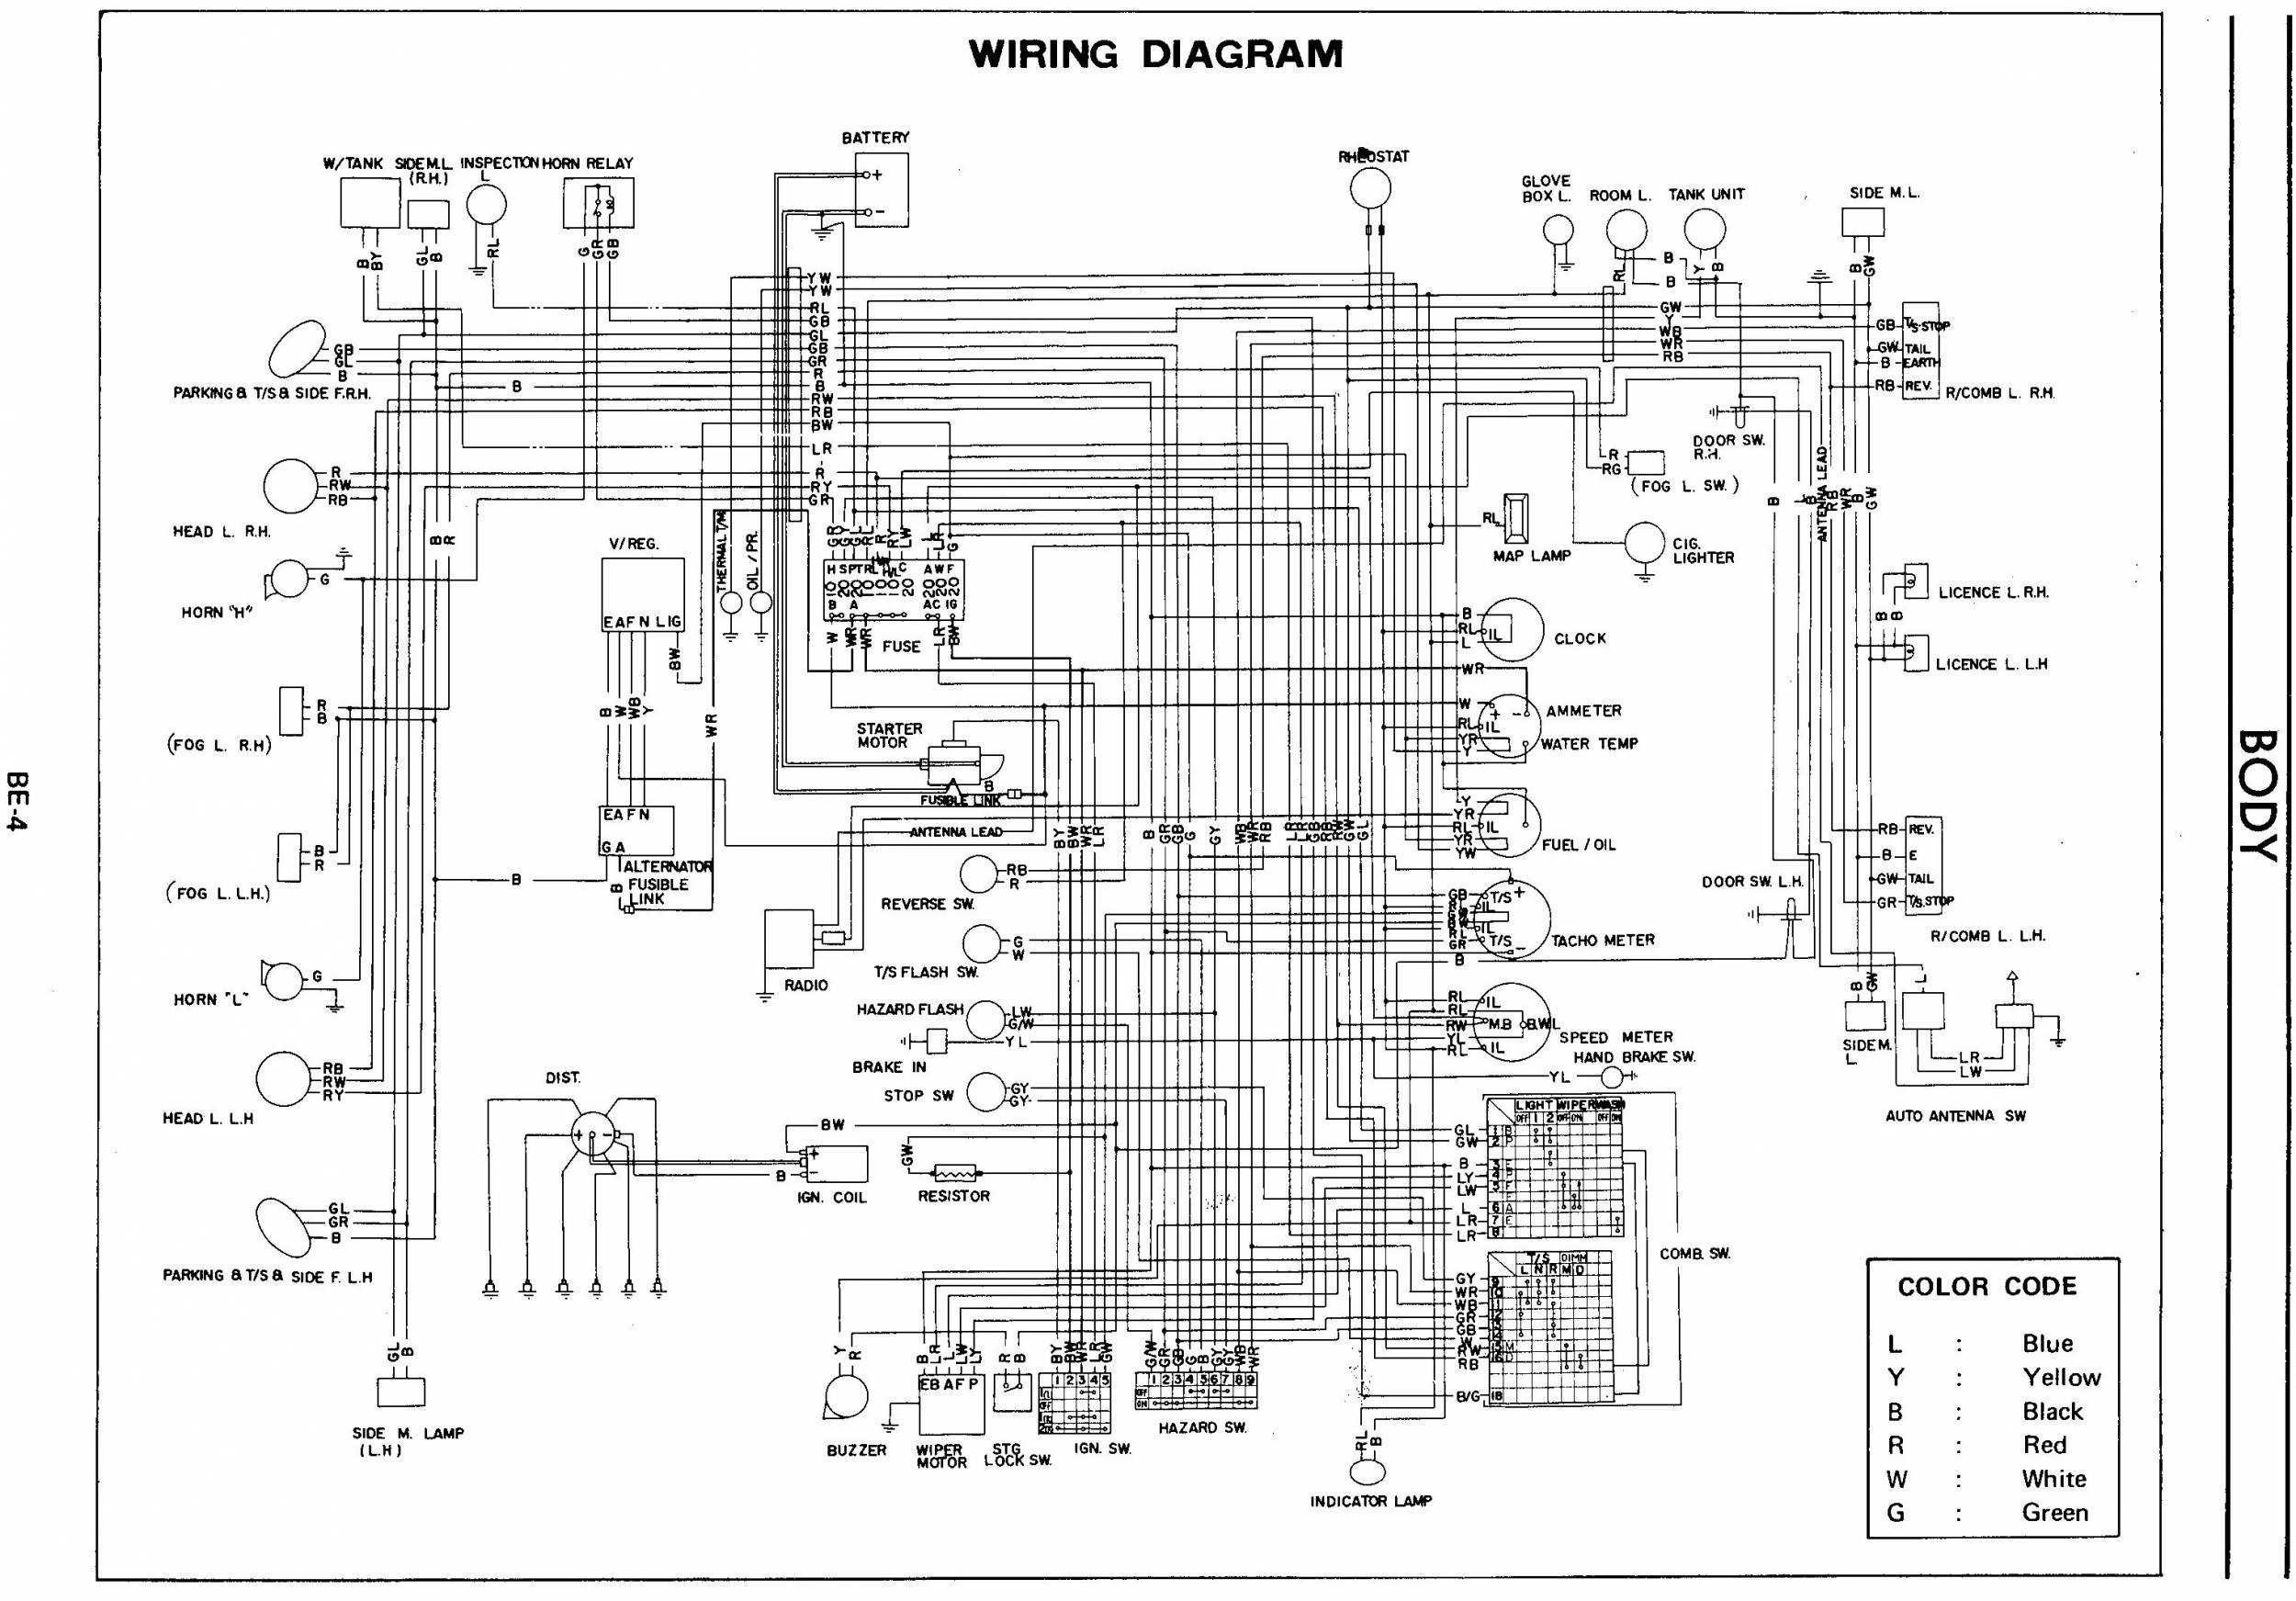 Mercedes Benz Engine Diagram Mercedes Benz Wiring Diagram Altermator Data Wiring Diagrams • Of Mercedes Benz Engine Diagram Mercedes Benz Cruise Control Wiring Diagram Data Wiring Diagrams •